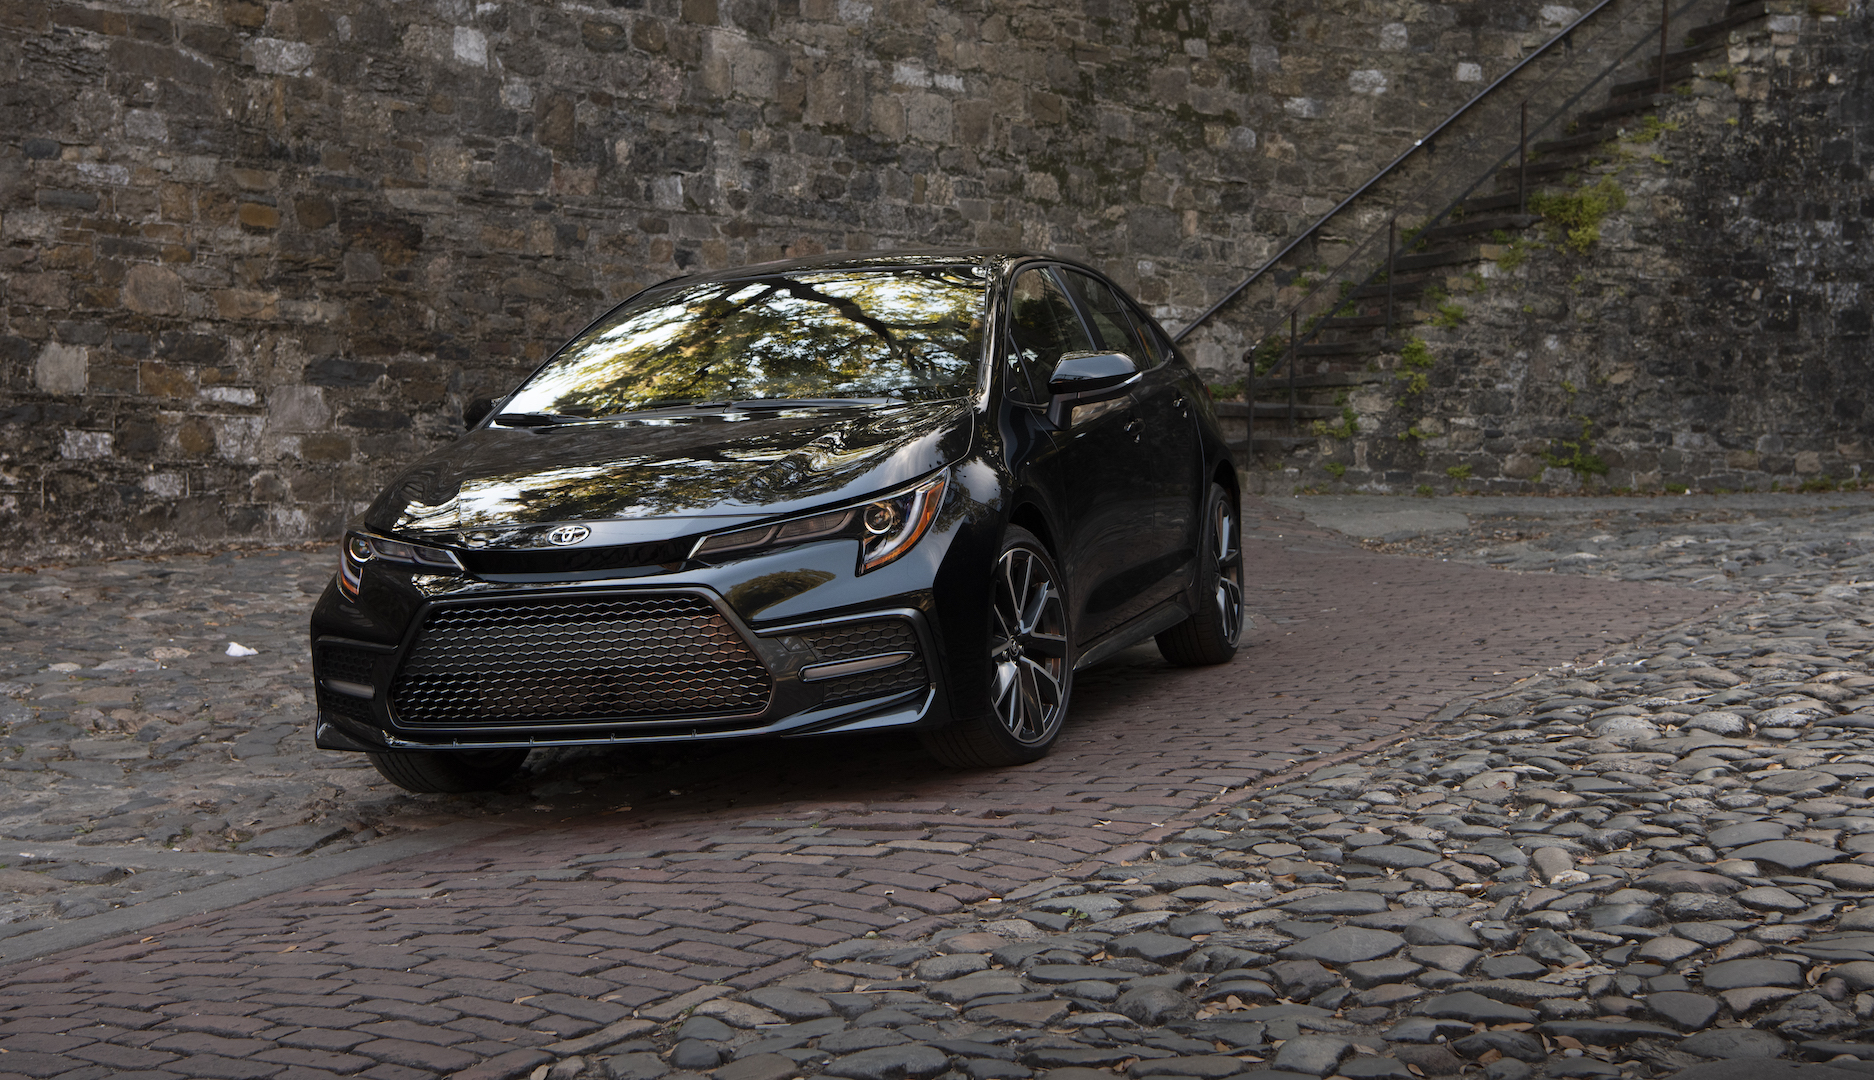 2020_Corolla_XSE_BlackSandPearl_011_v1_current